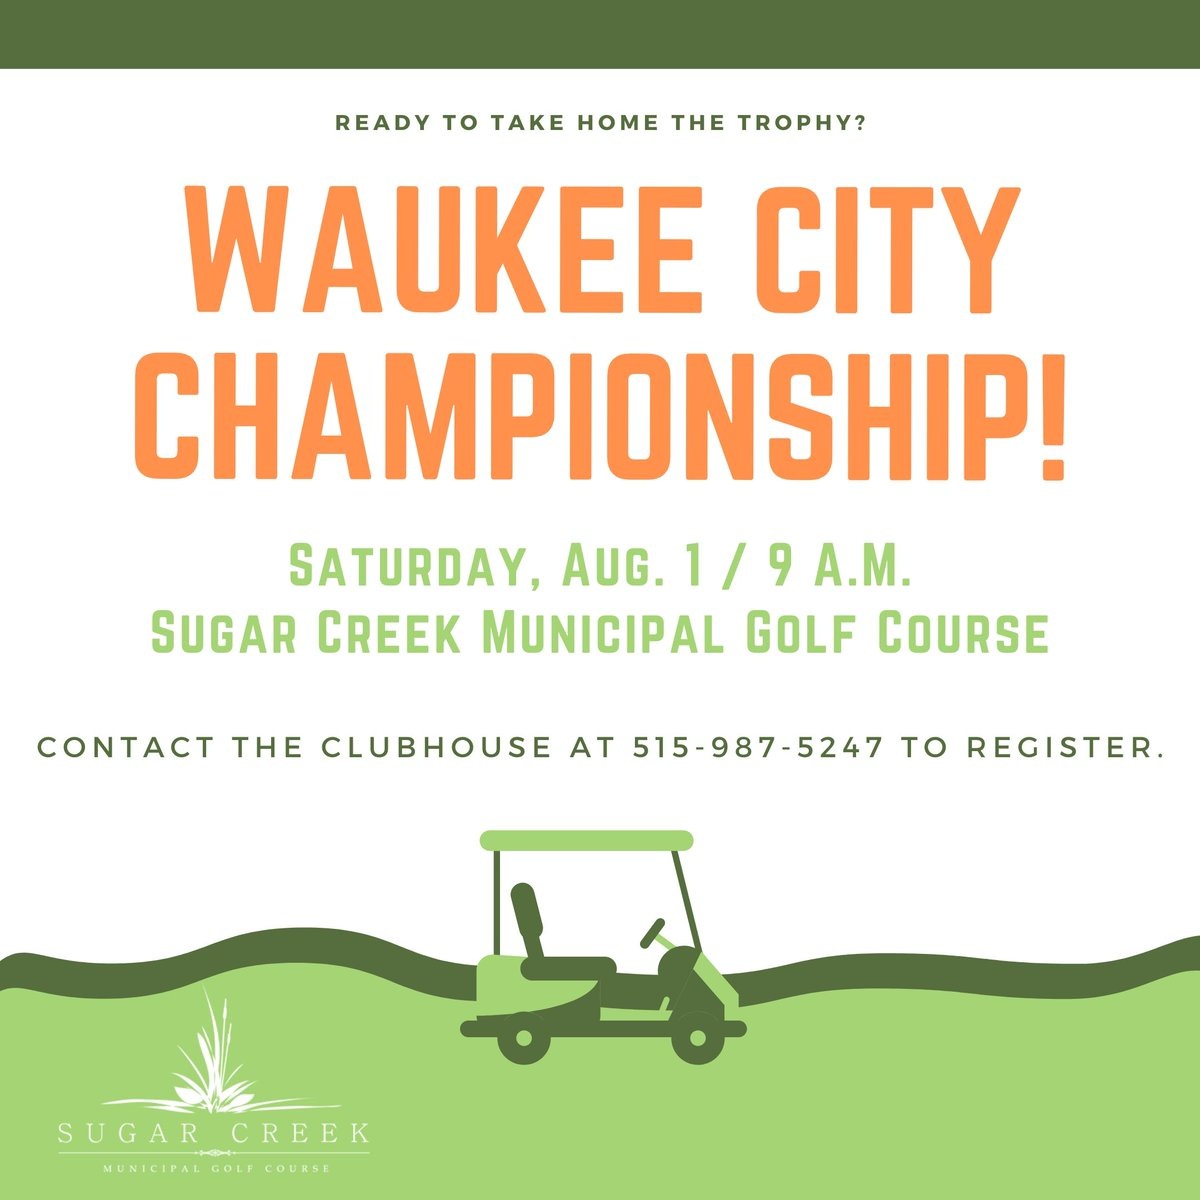 The Waukee City Championship is this Saturday! The fee is $60 per golfer. Call the Clubhouse to register at 515-987-5247.